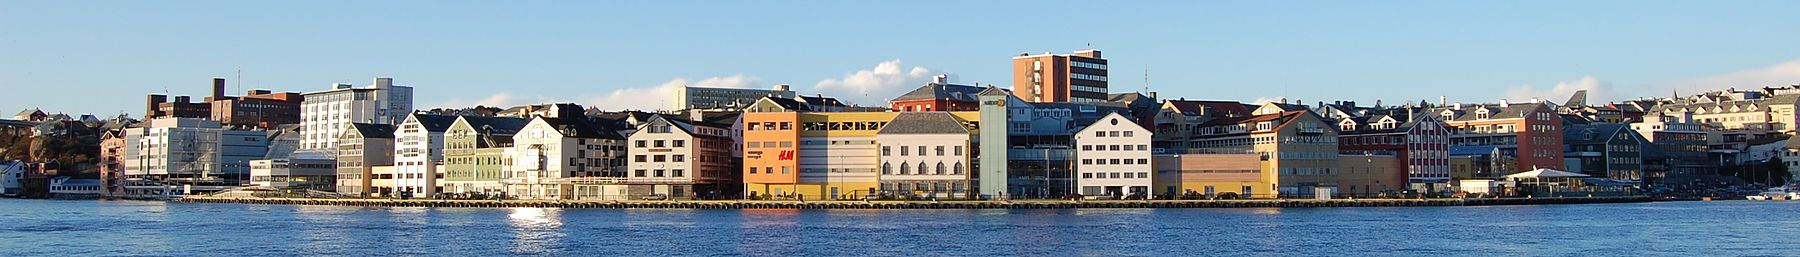 kristiansund chat Compare and book your klm flights and view our special ticket deals and last minutes check in online on klmcom or book a hotel or rental car for your trip.